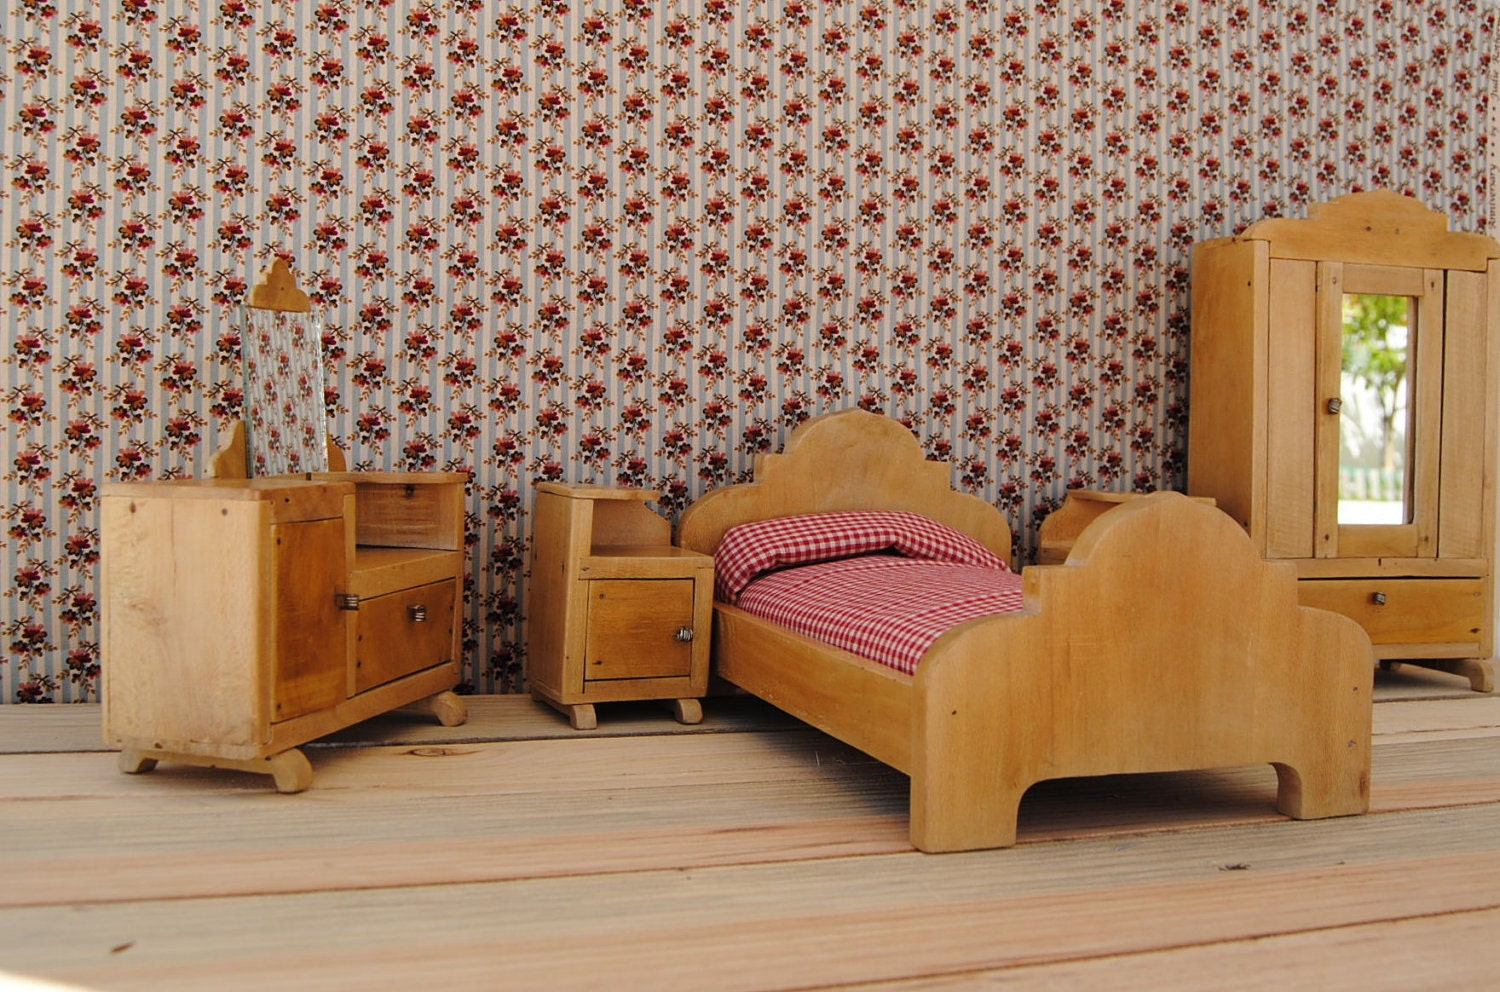 unique 1950 s vintage miniature toy bedroom furniture handmade